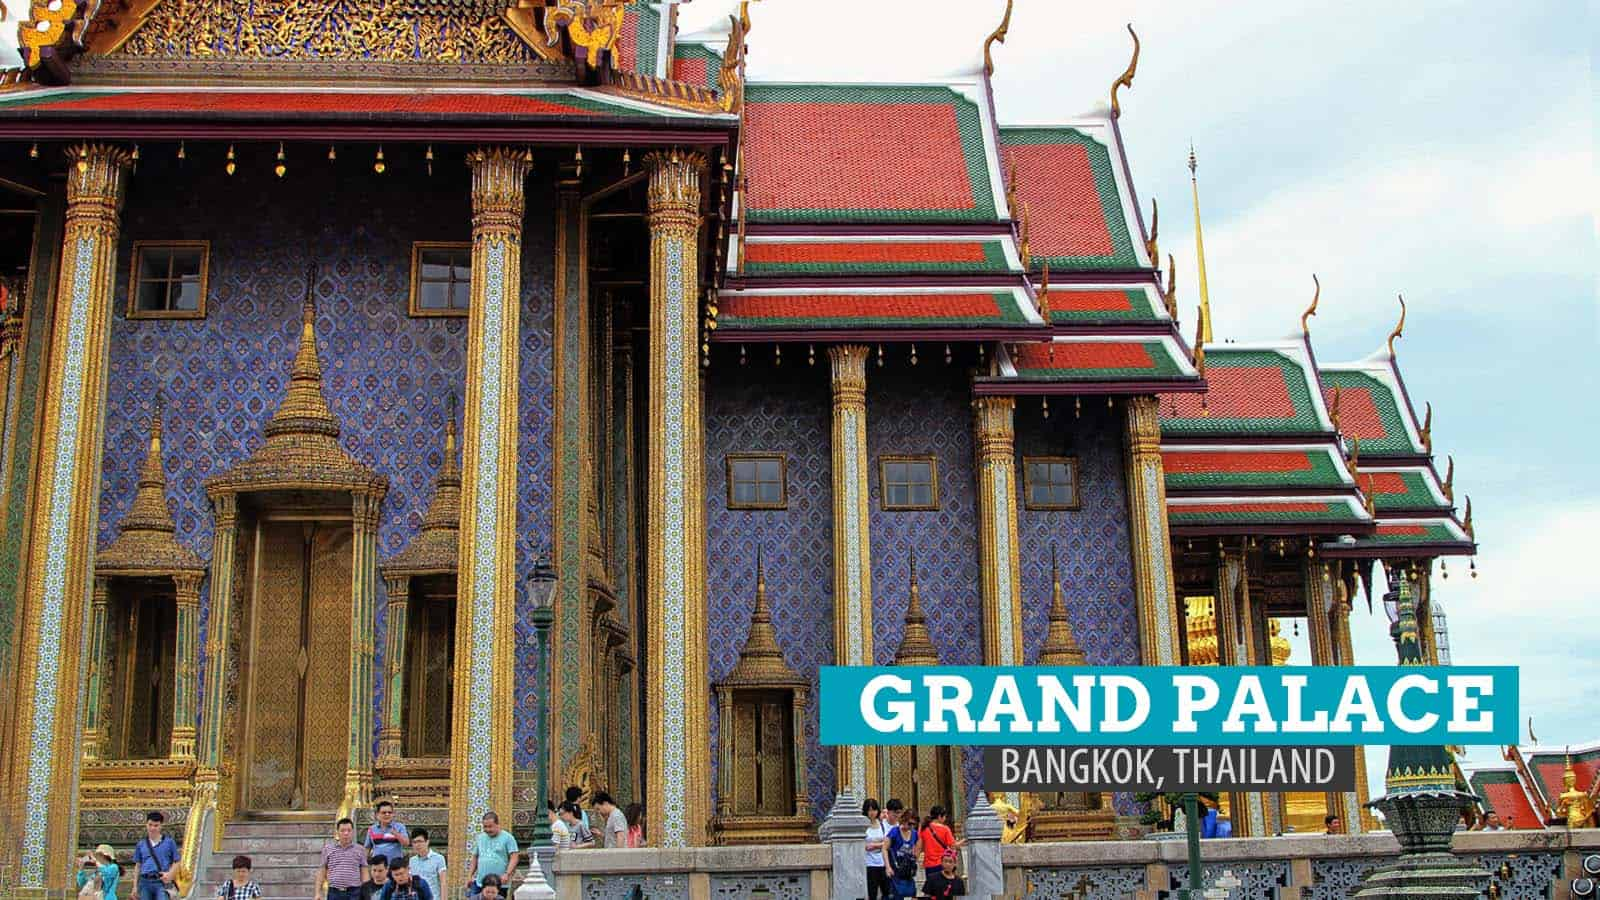 Grand Palace and Temple of the Emerald Buddha in Bangkok